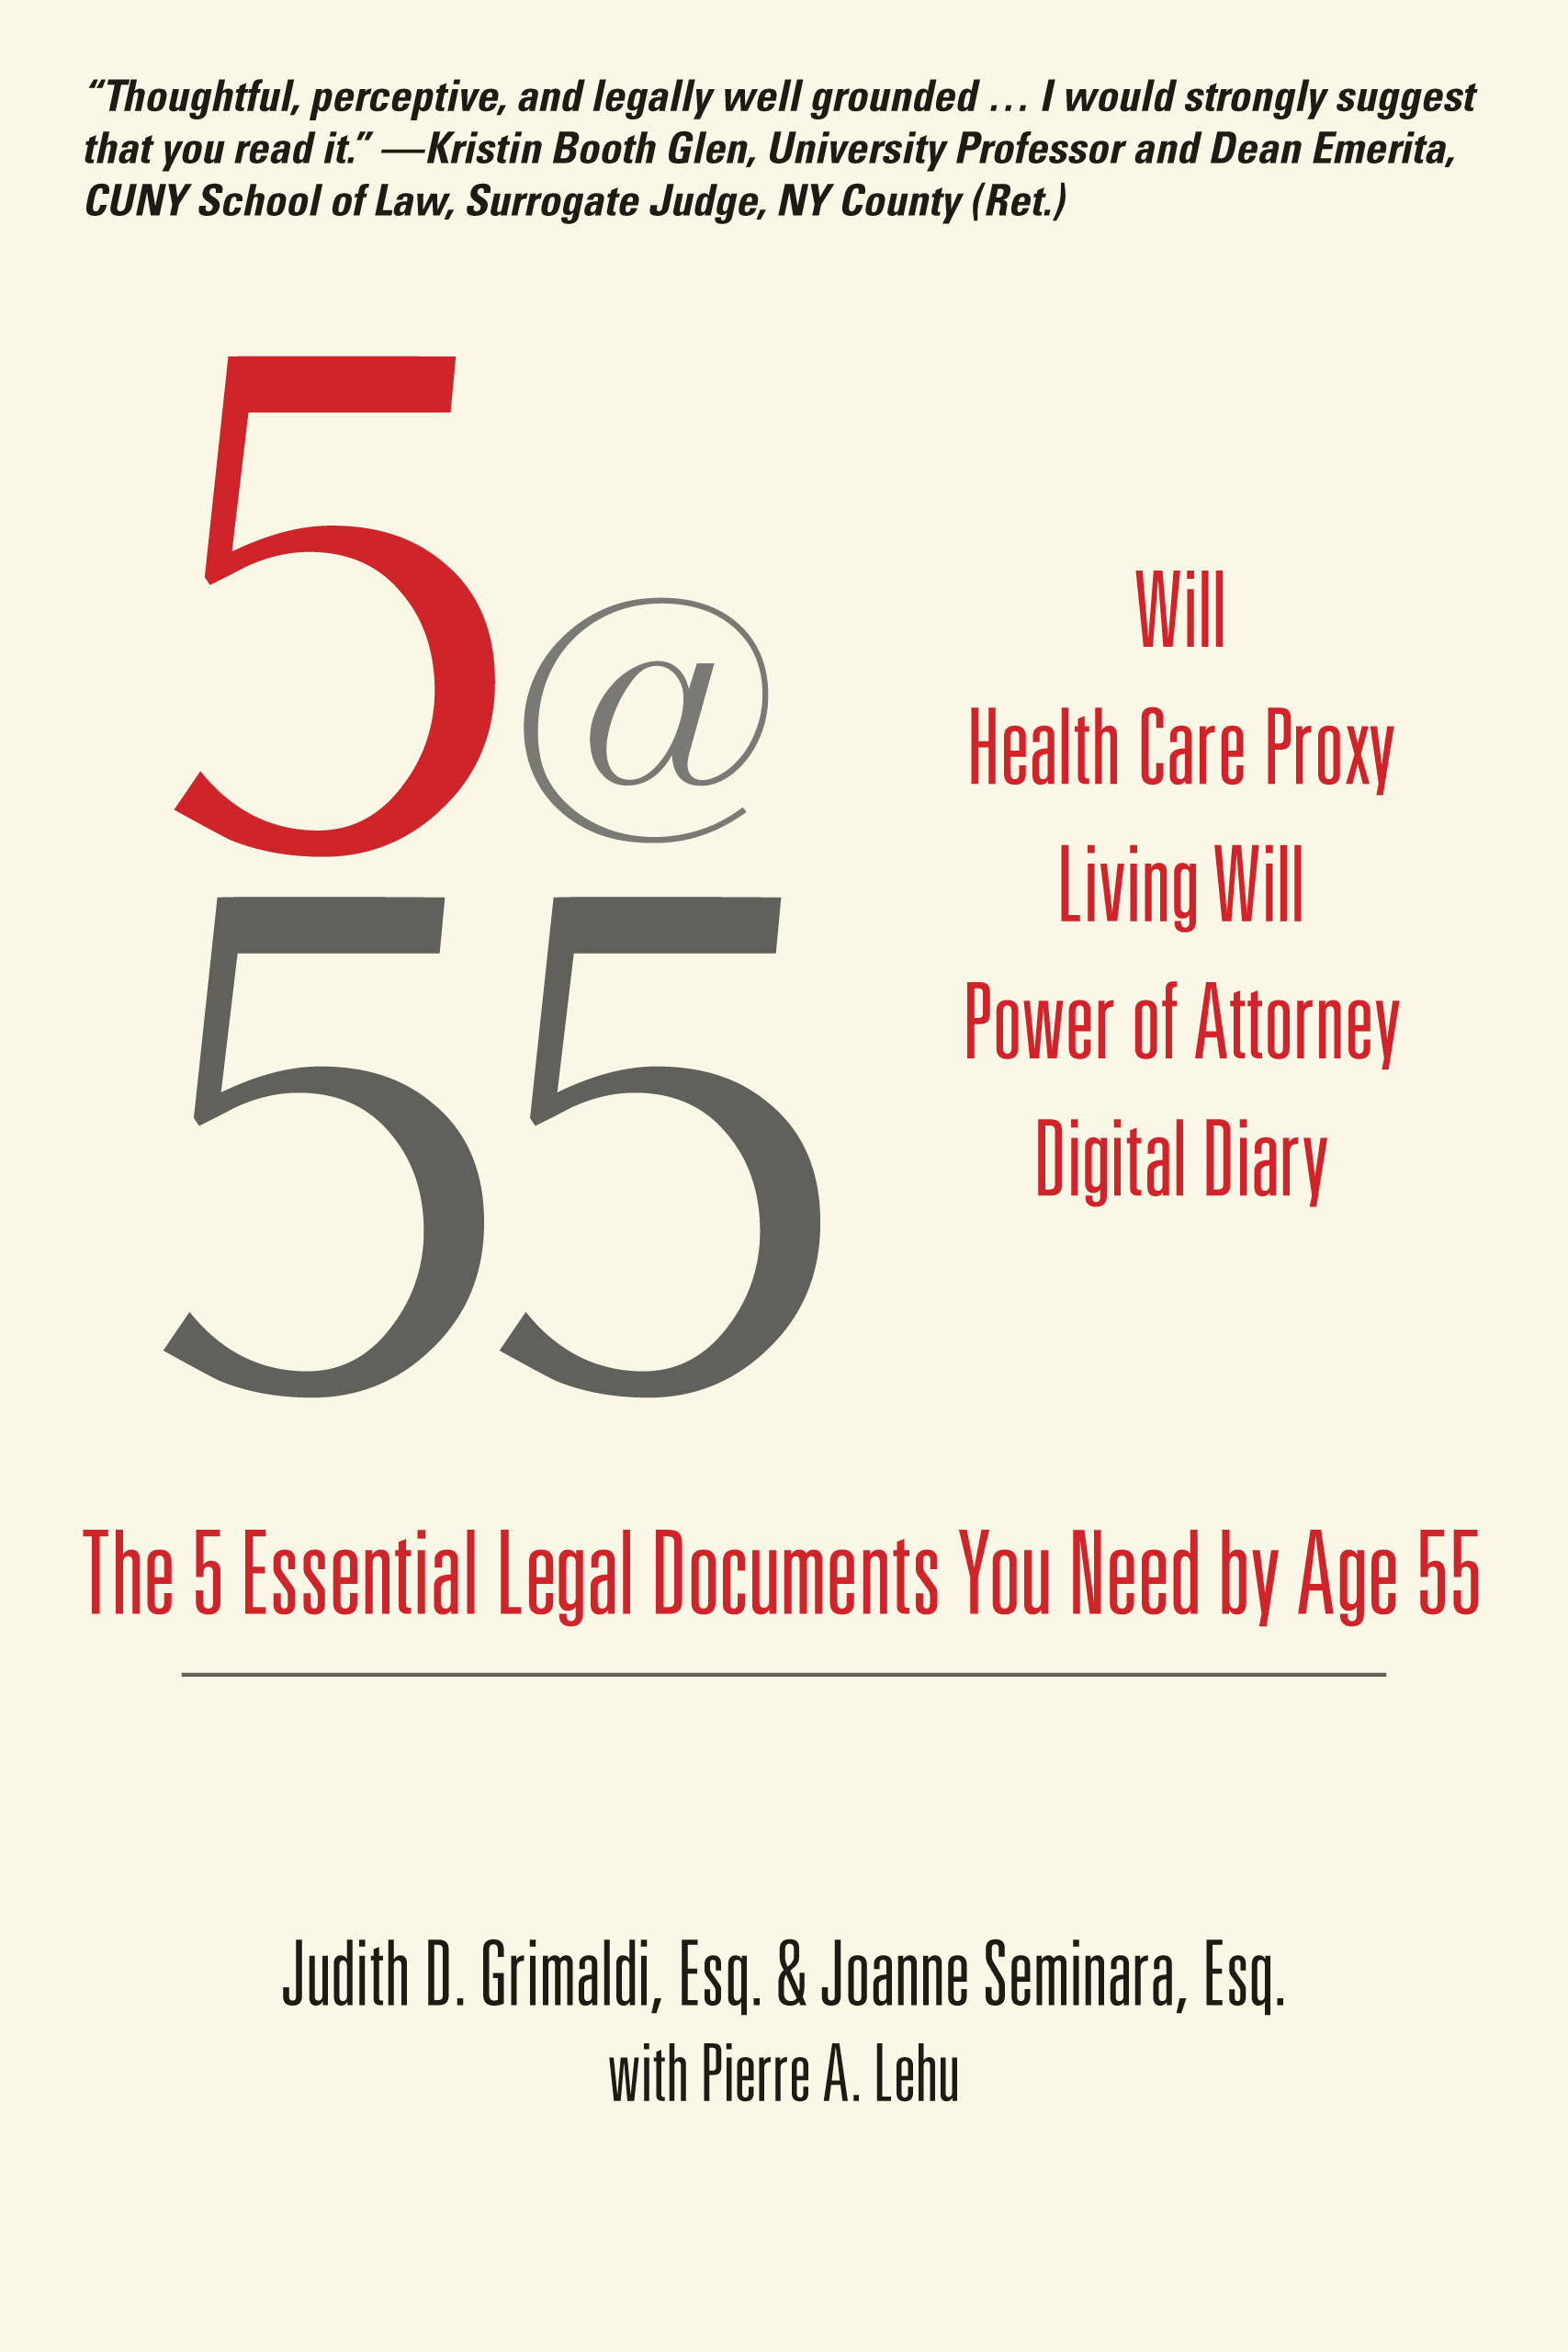 5@55 The 5 Essential Legal Documents You Need by Age 55